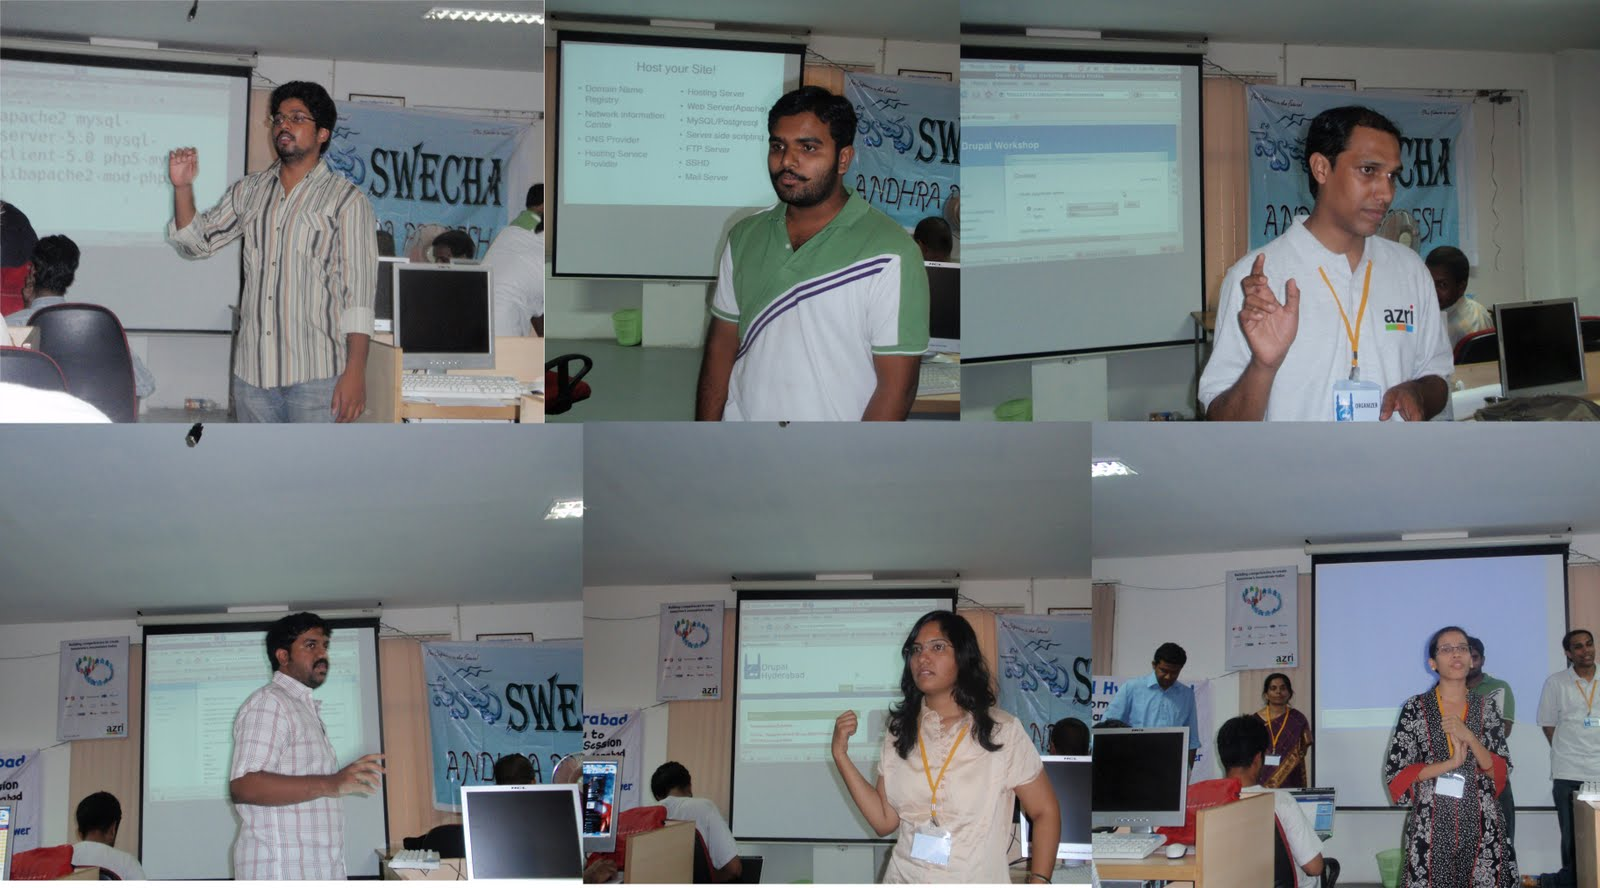 drupal-hyderabad speakers at second day